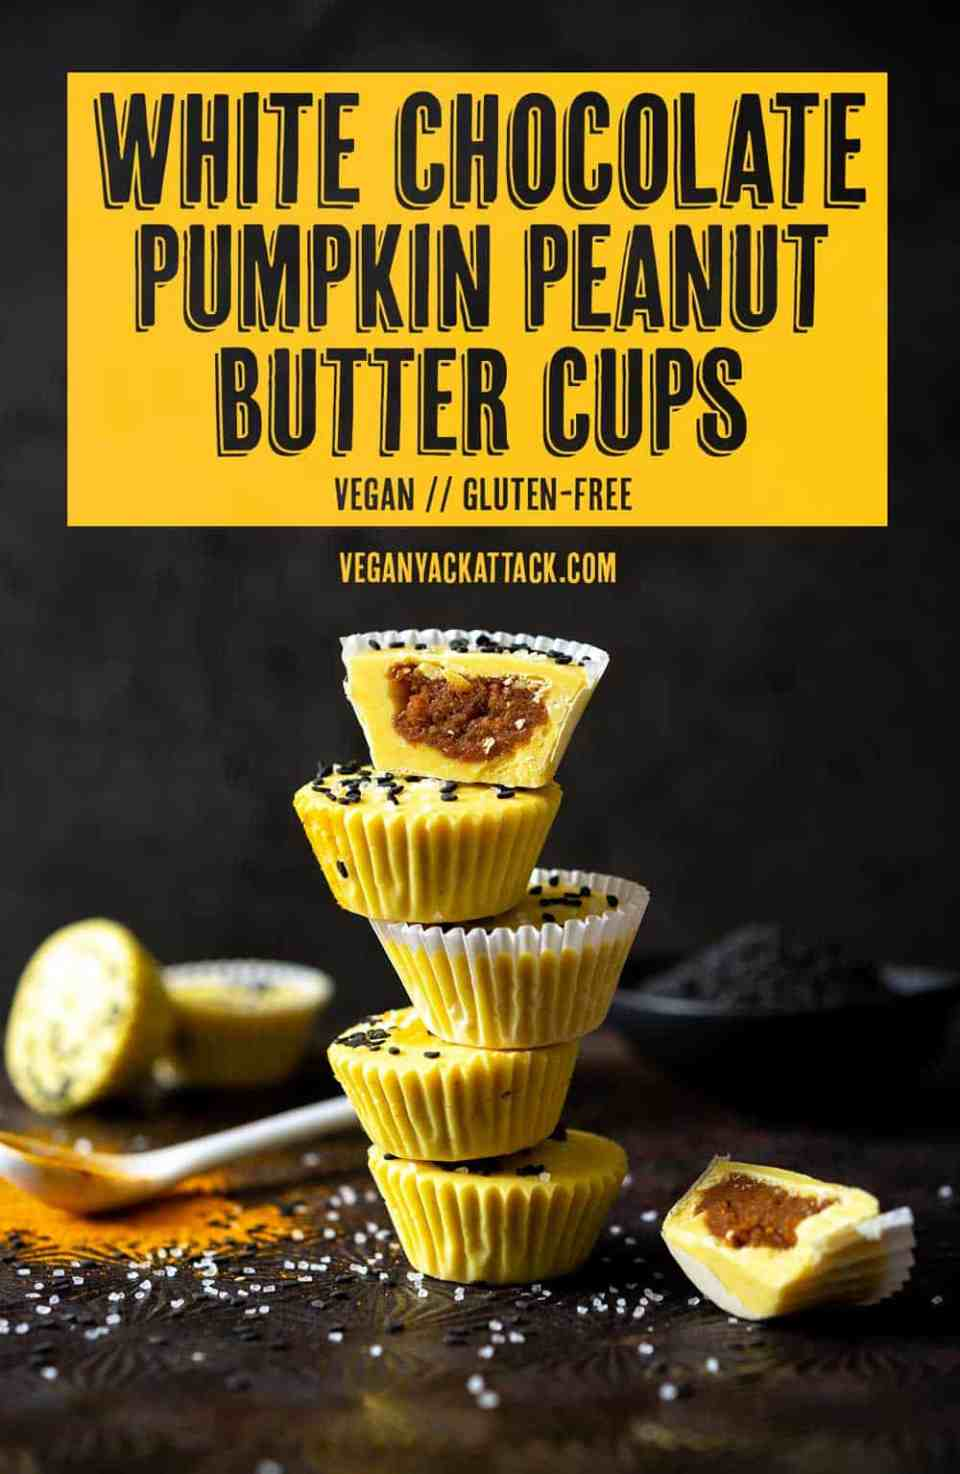 Need a unique, fall treat? These vegan White Chocolate Pumpkin Peanut Butter Cups are incredible, and easier to make than you might think! #dairyfree #glutenfree #veganyackattack